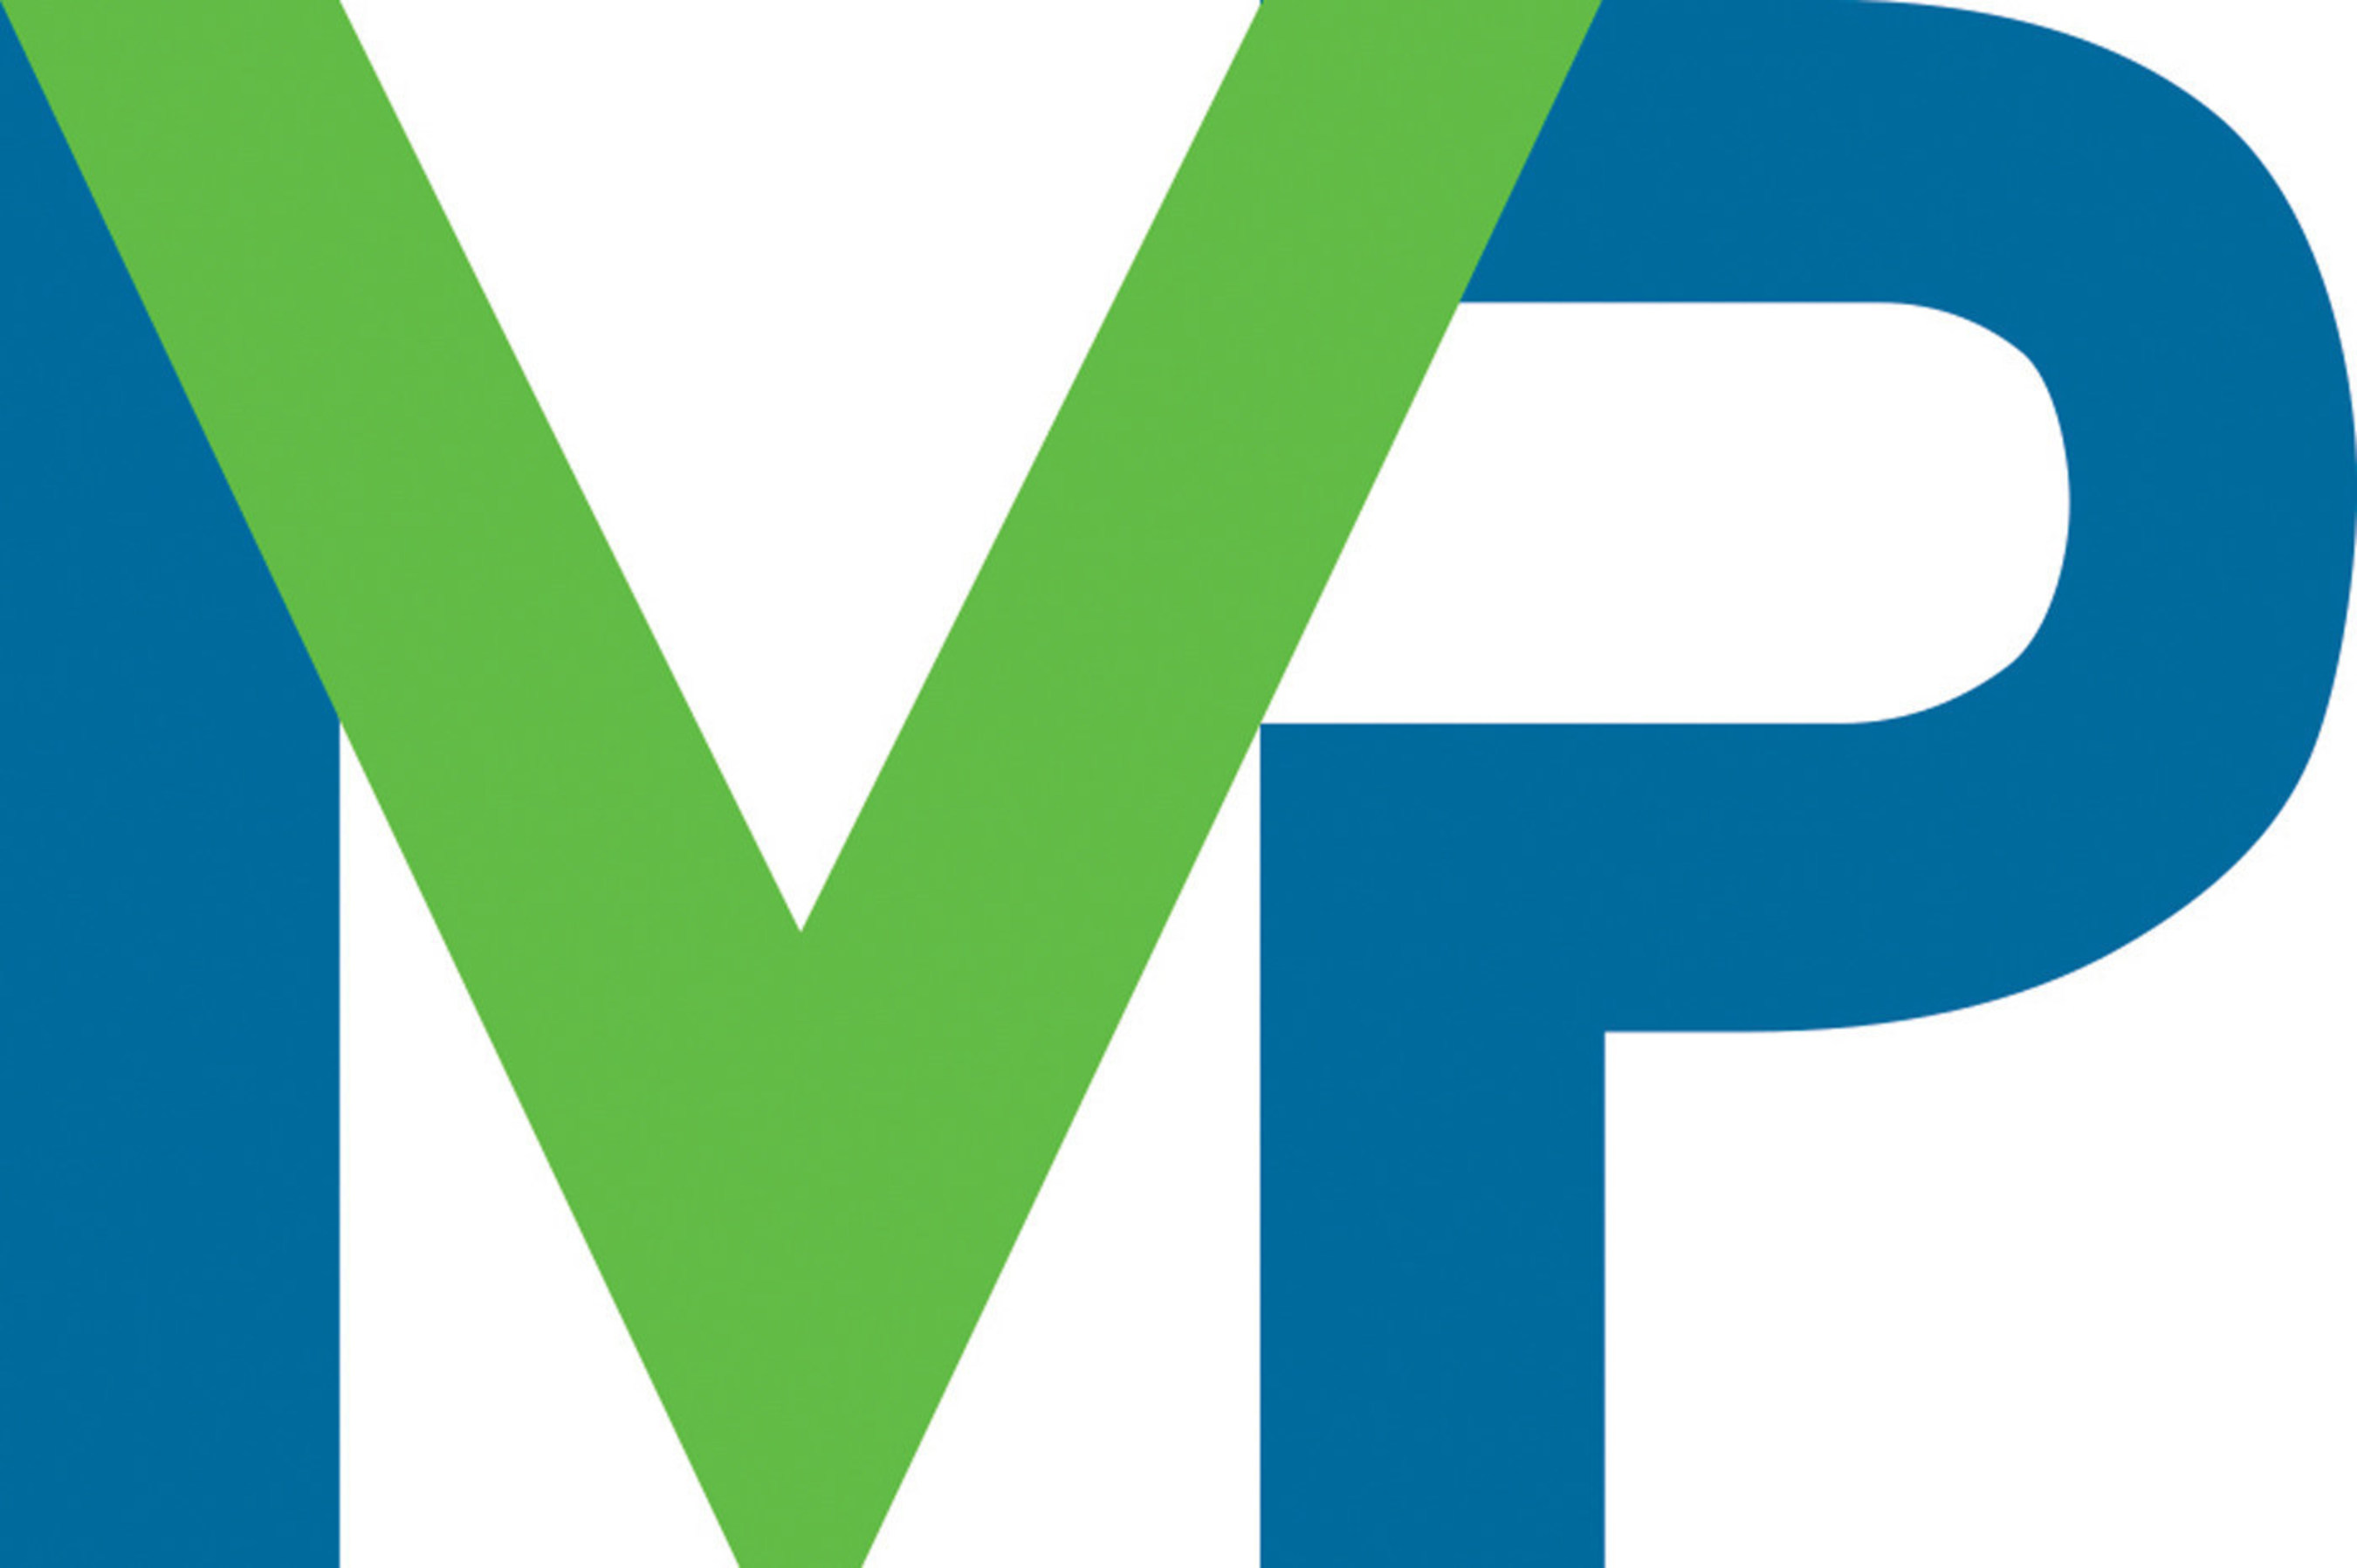 MedTech and BioTech Veterans Program: Recareering transitioning military and veterans into compelling careers in the life sciences